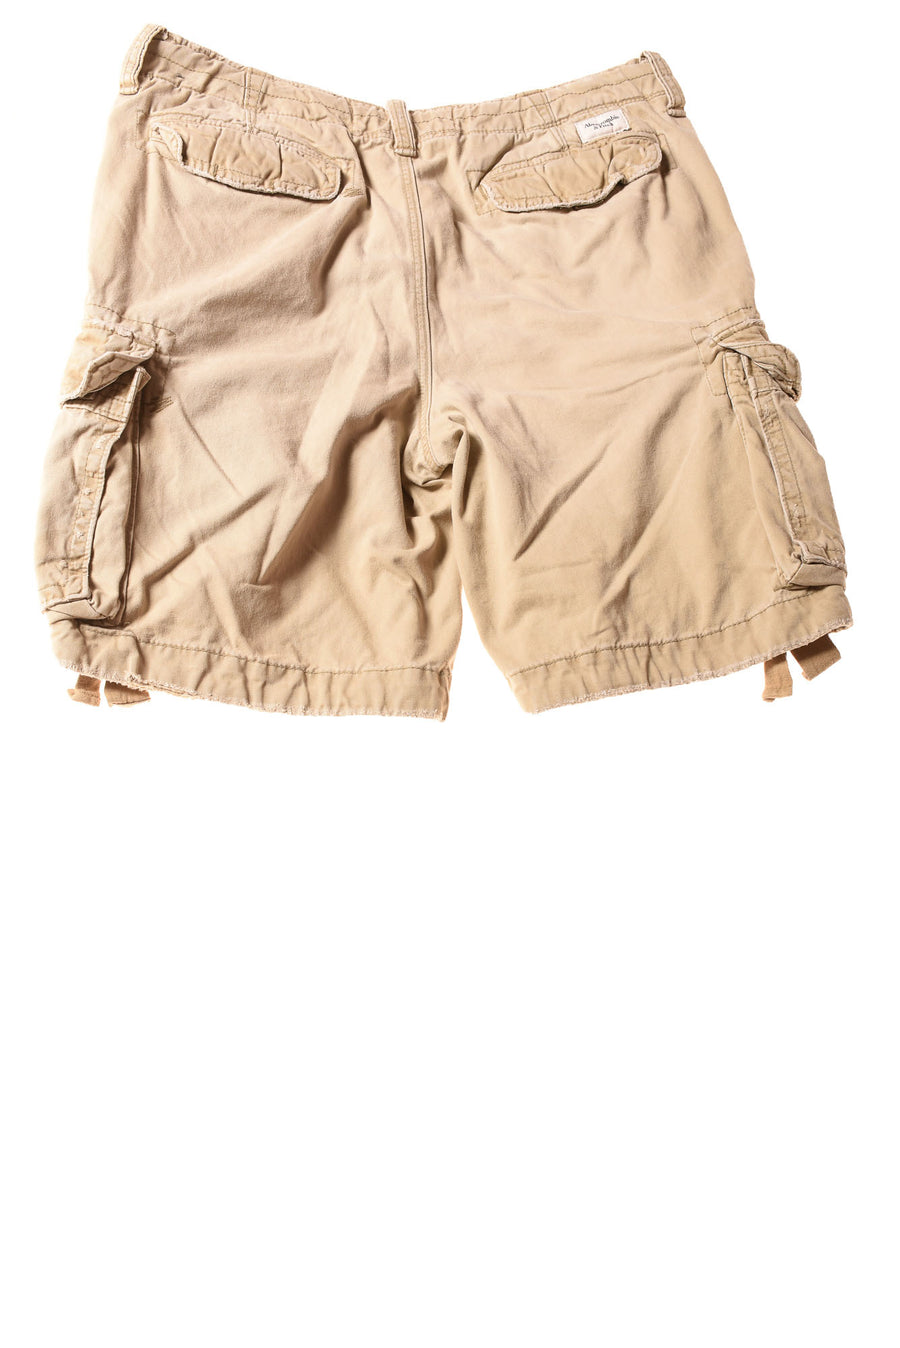 USED Abercrombie & Fitch Men's Shorts 36 Tan